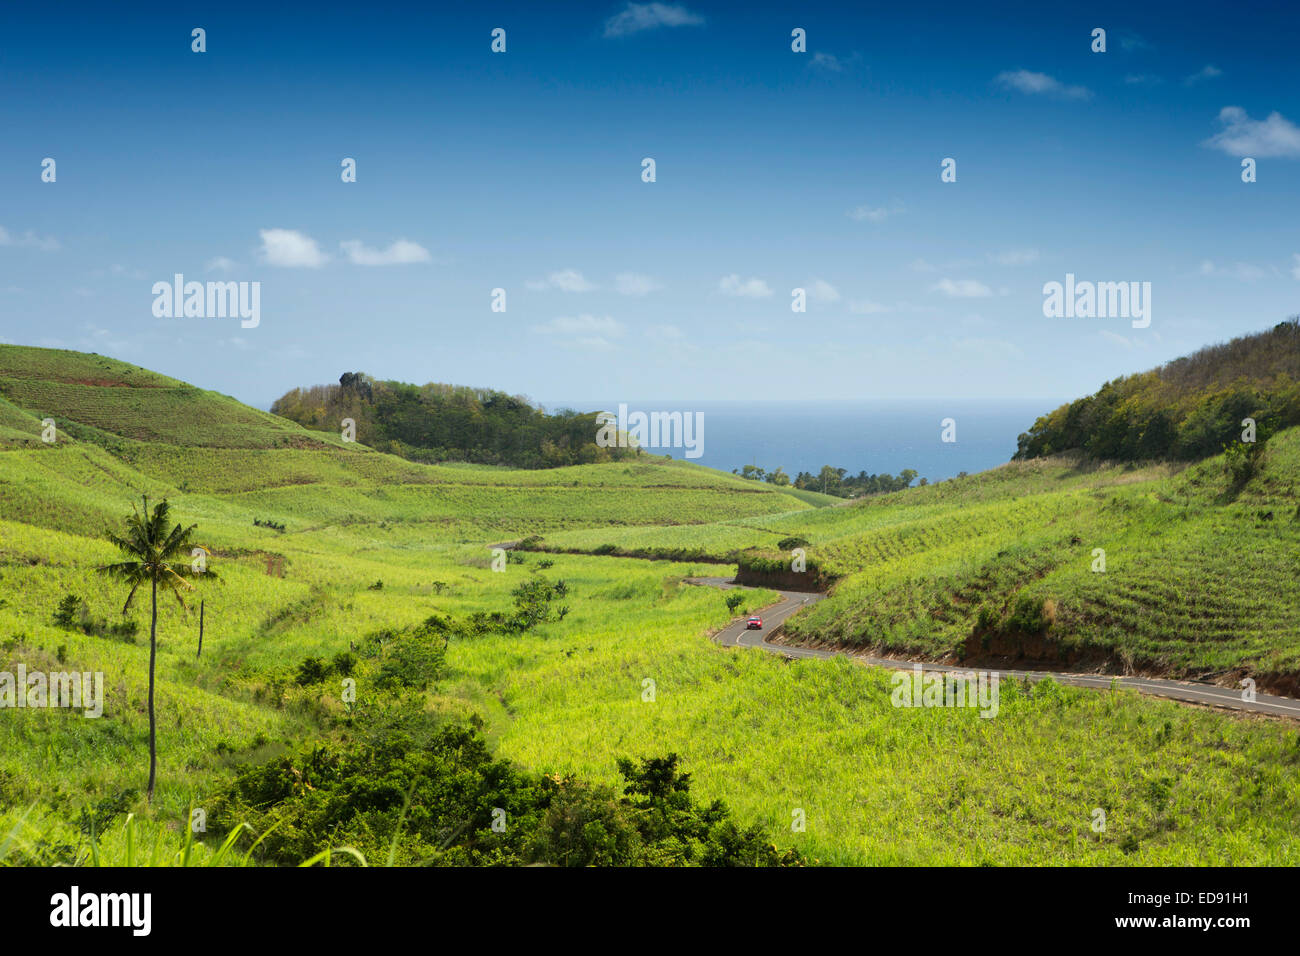 Mauritius, Bel Air, road from Maconde through hilltop sugar cane fields - Stock Image